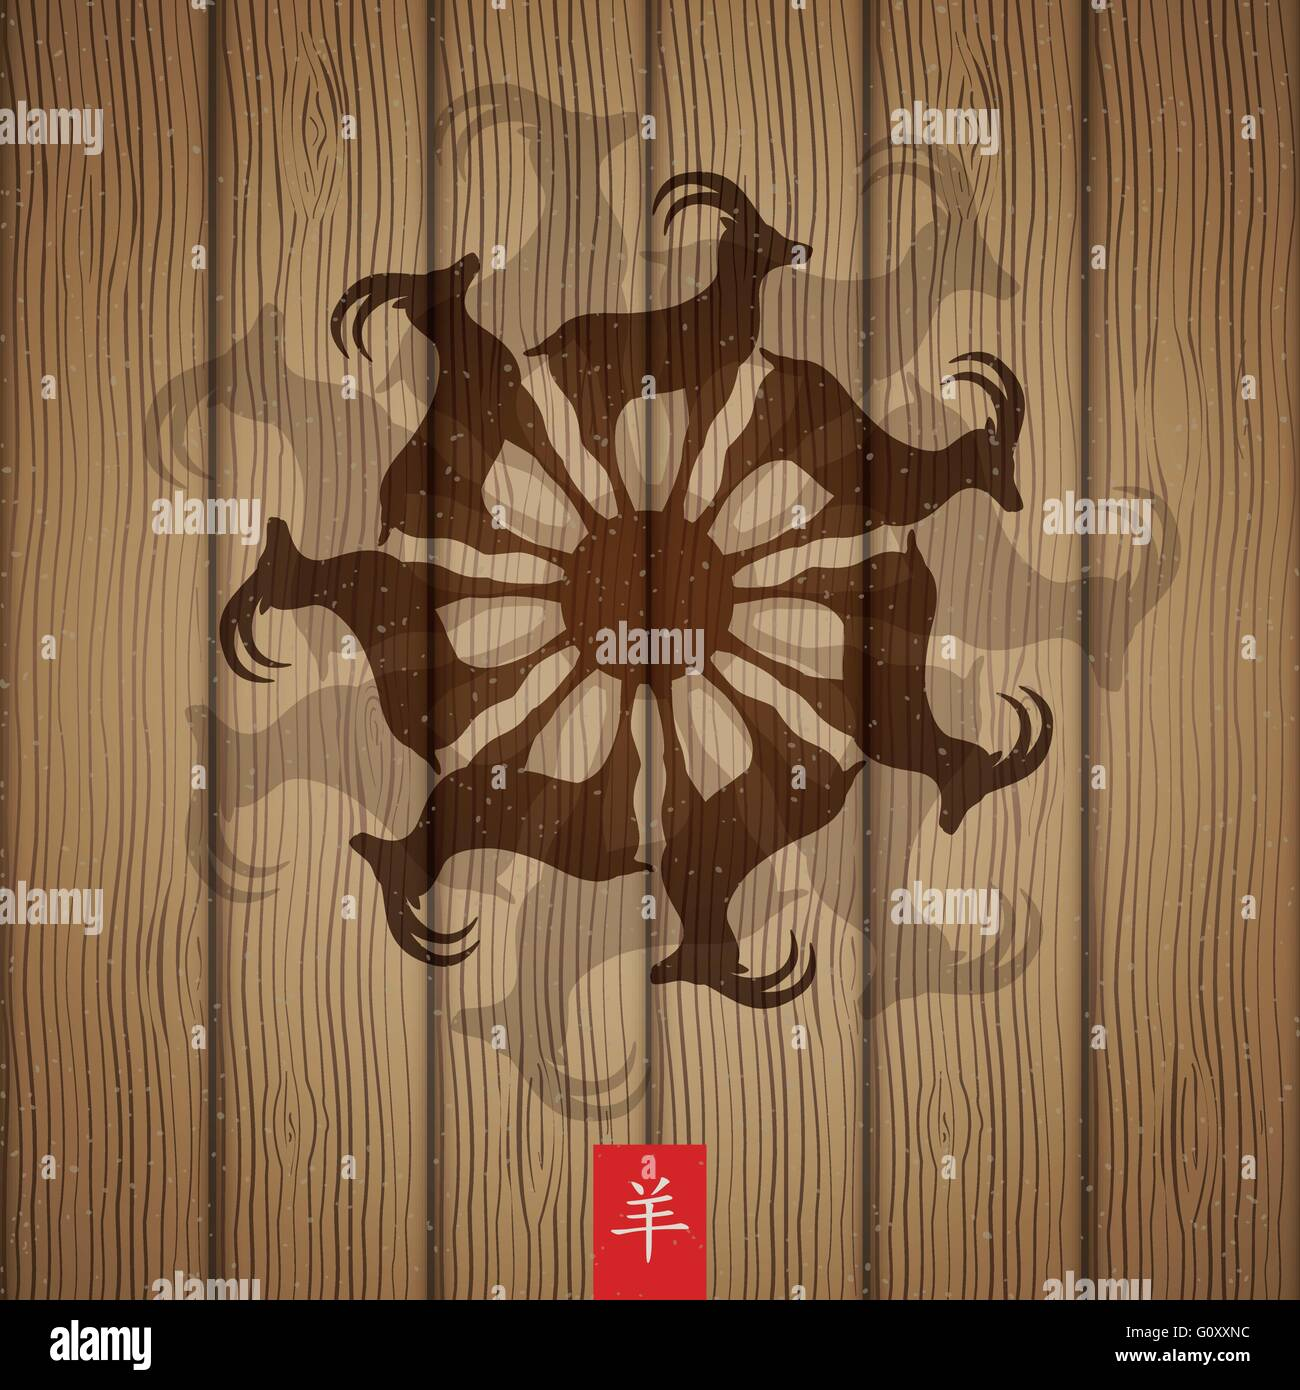 Vector design for Chinese new year. Year of the goat. 2015. - Stock Image